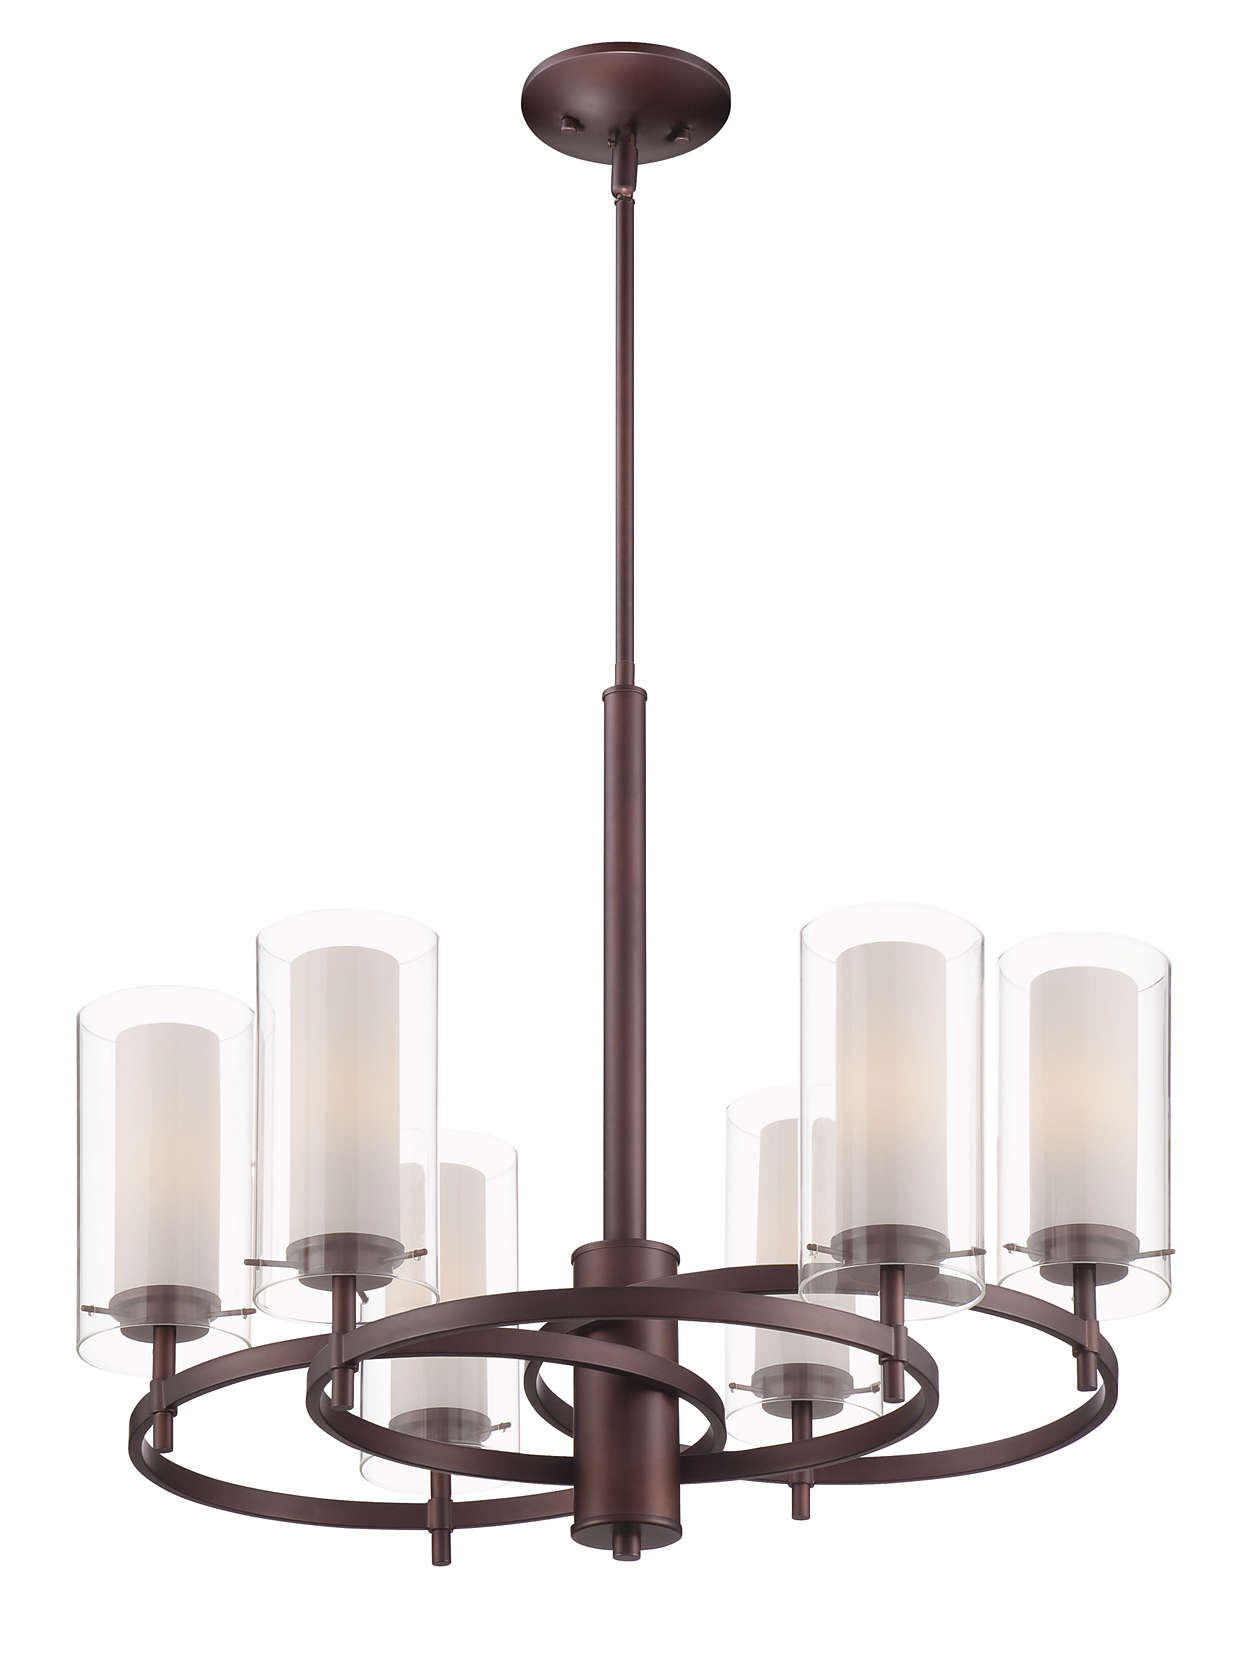 Hula 6-light chandelier in Merlot Bronze finish